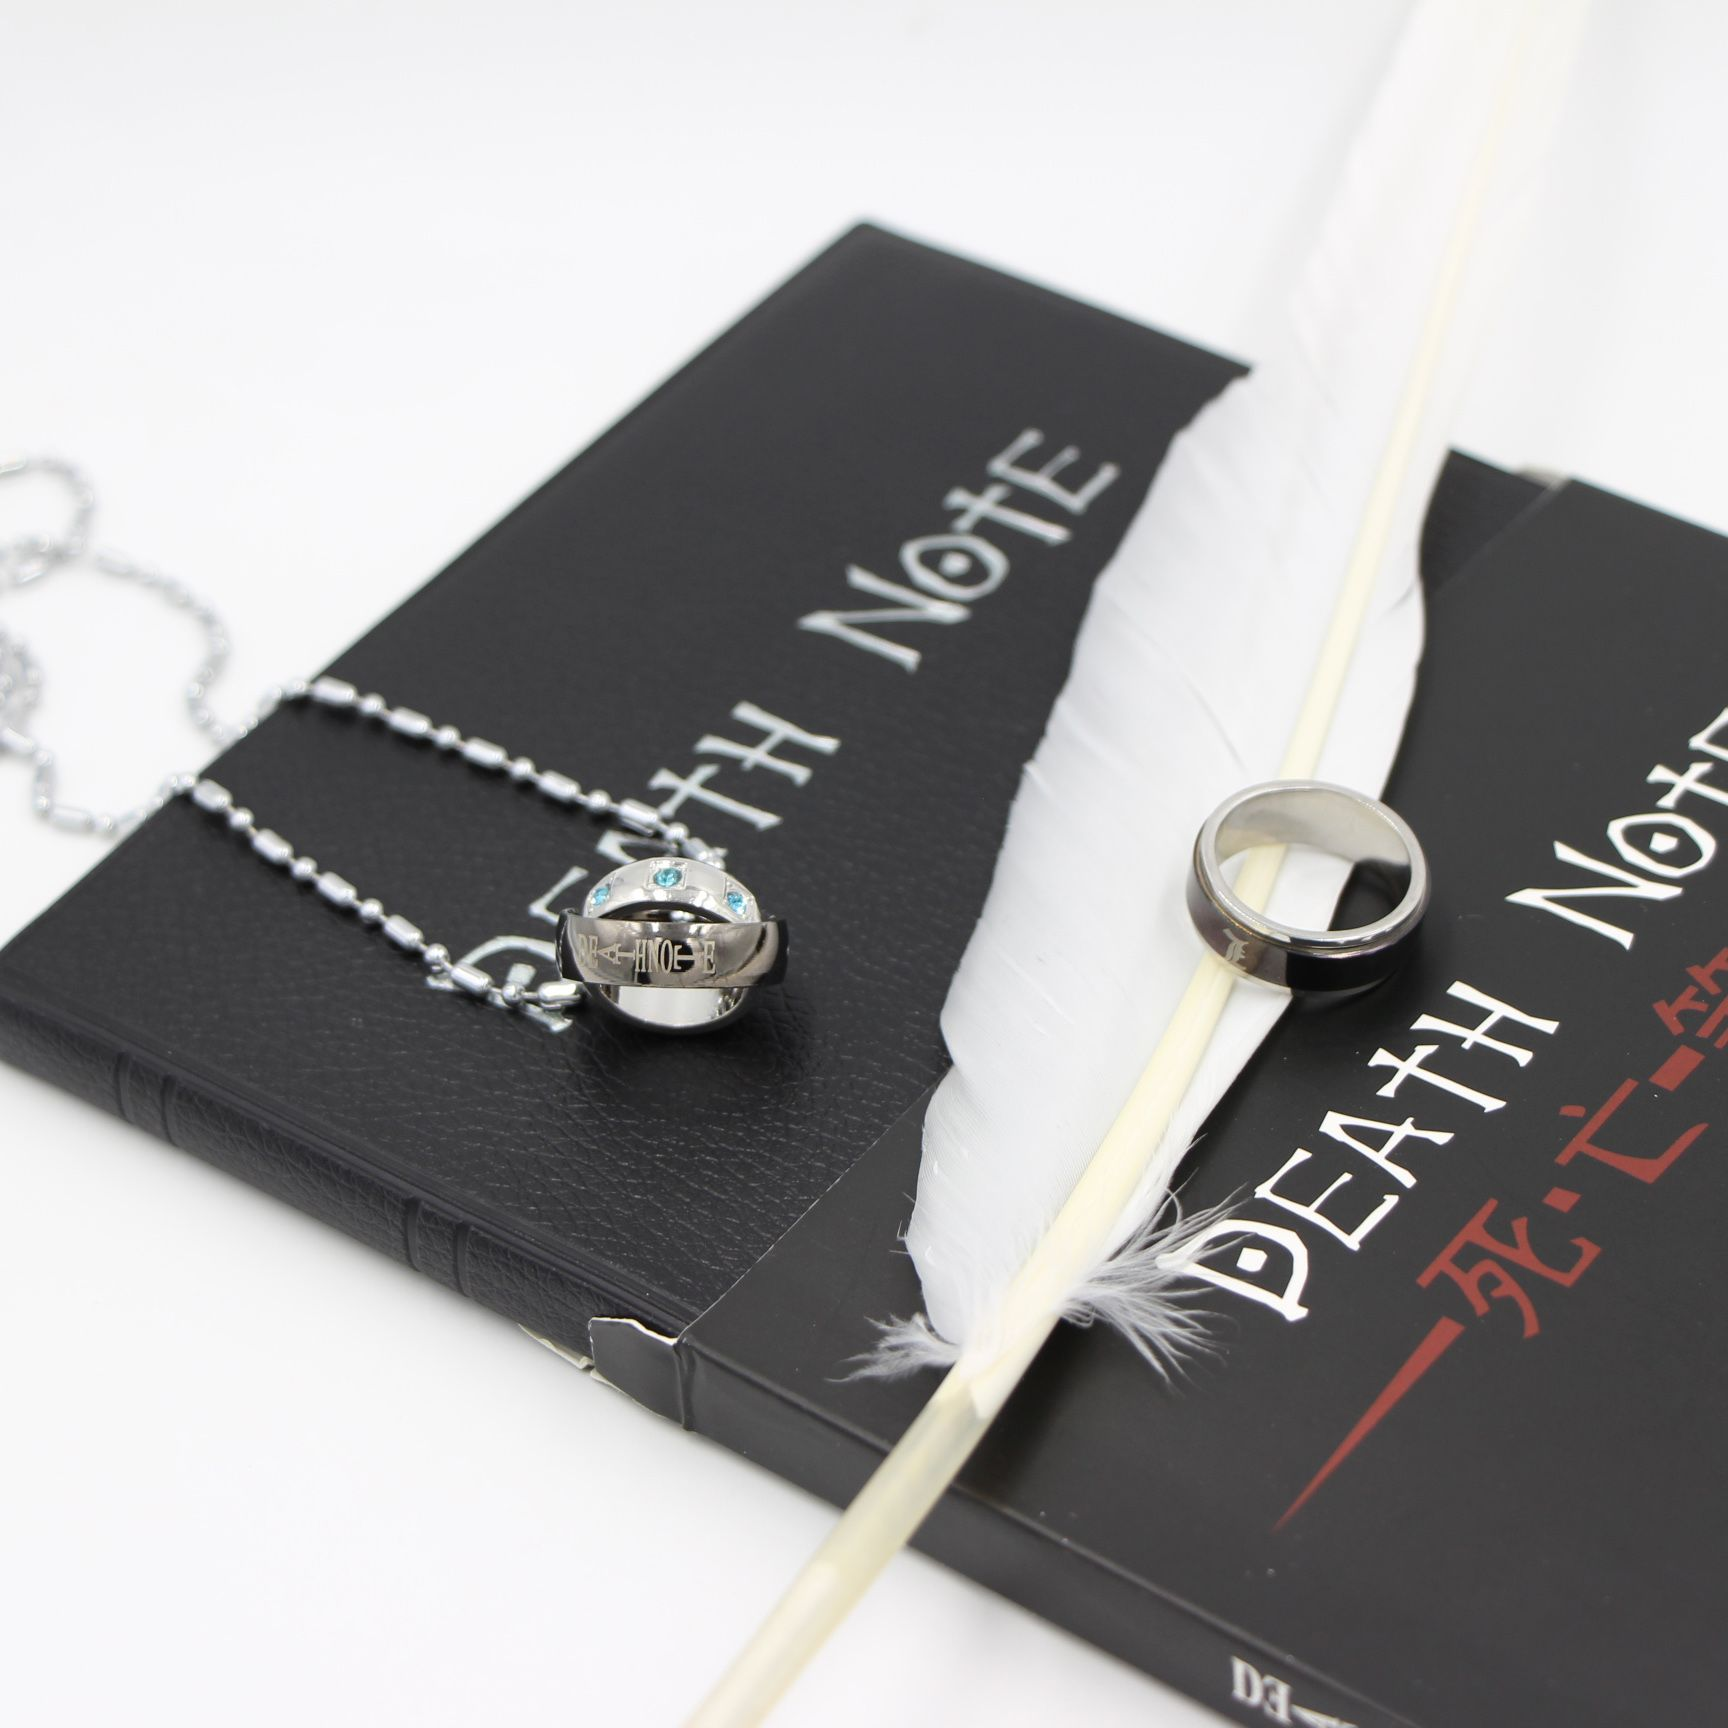 Cosplay Ryuk Cover Note Book Death Note <font><b>Notebook</b></font> & Feather Pen & Necklace& Ring Stationery Set Writing Journal Death Note